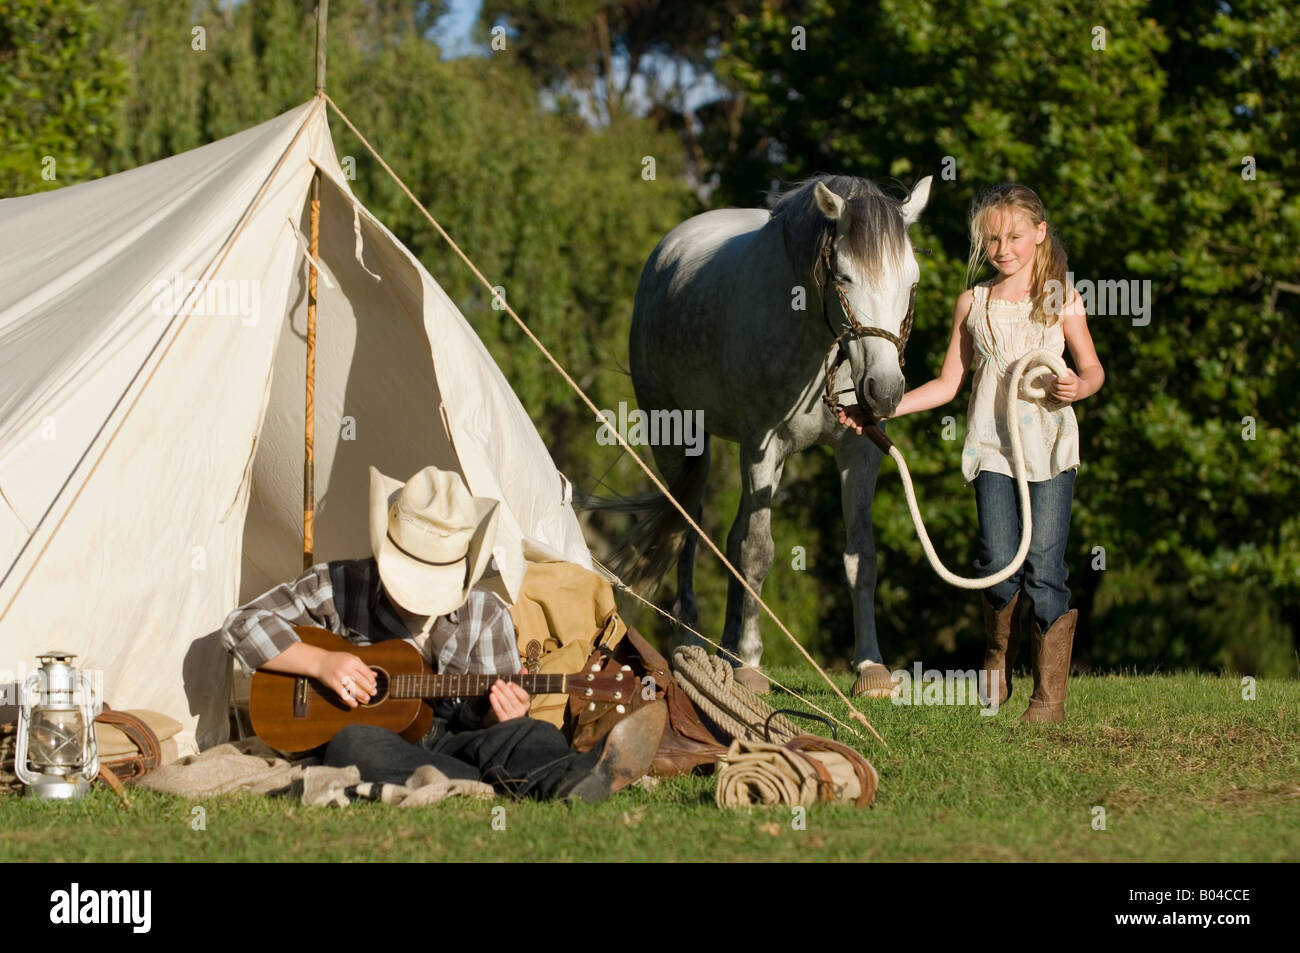 A boy playing a guitar and a girl walking a horse - Stock Image